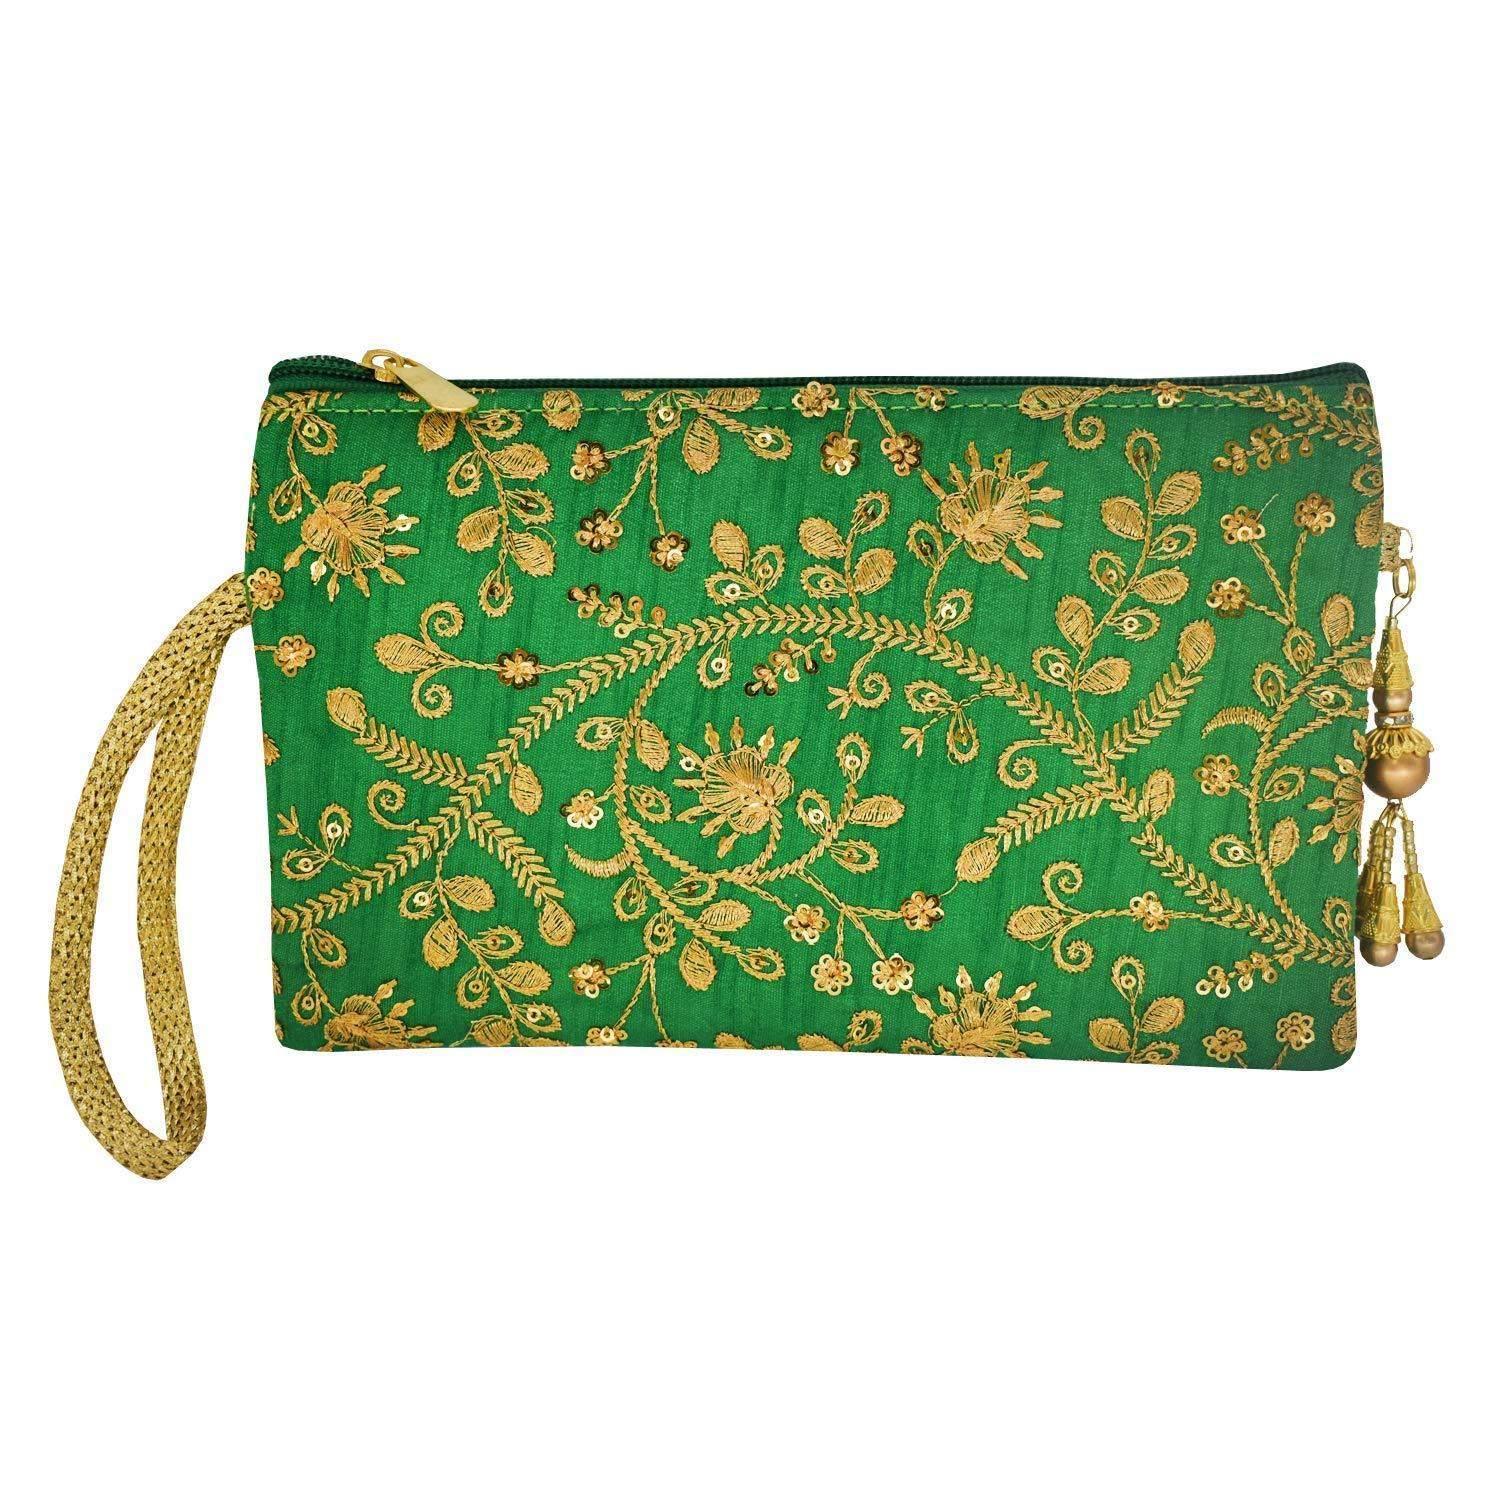 Embroidery Multipurpose Pencil Pouch Ladies Purse (Green) - Bagaholics Gift